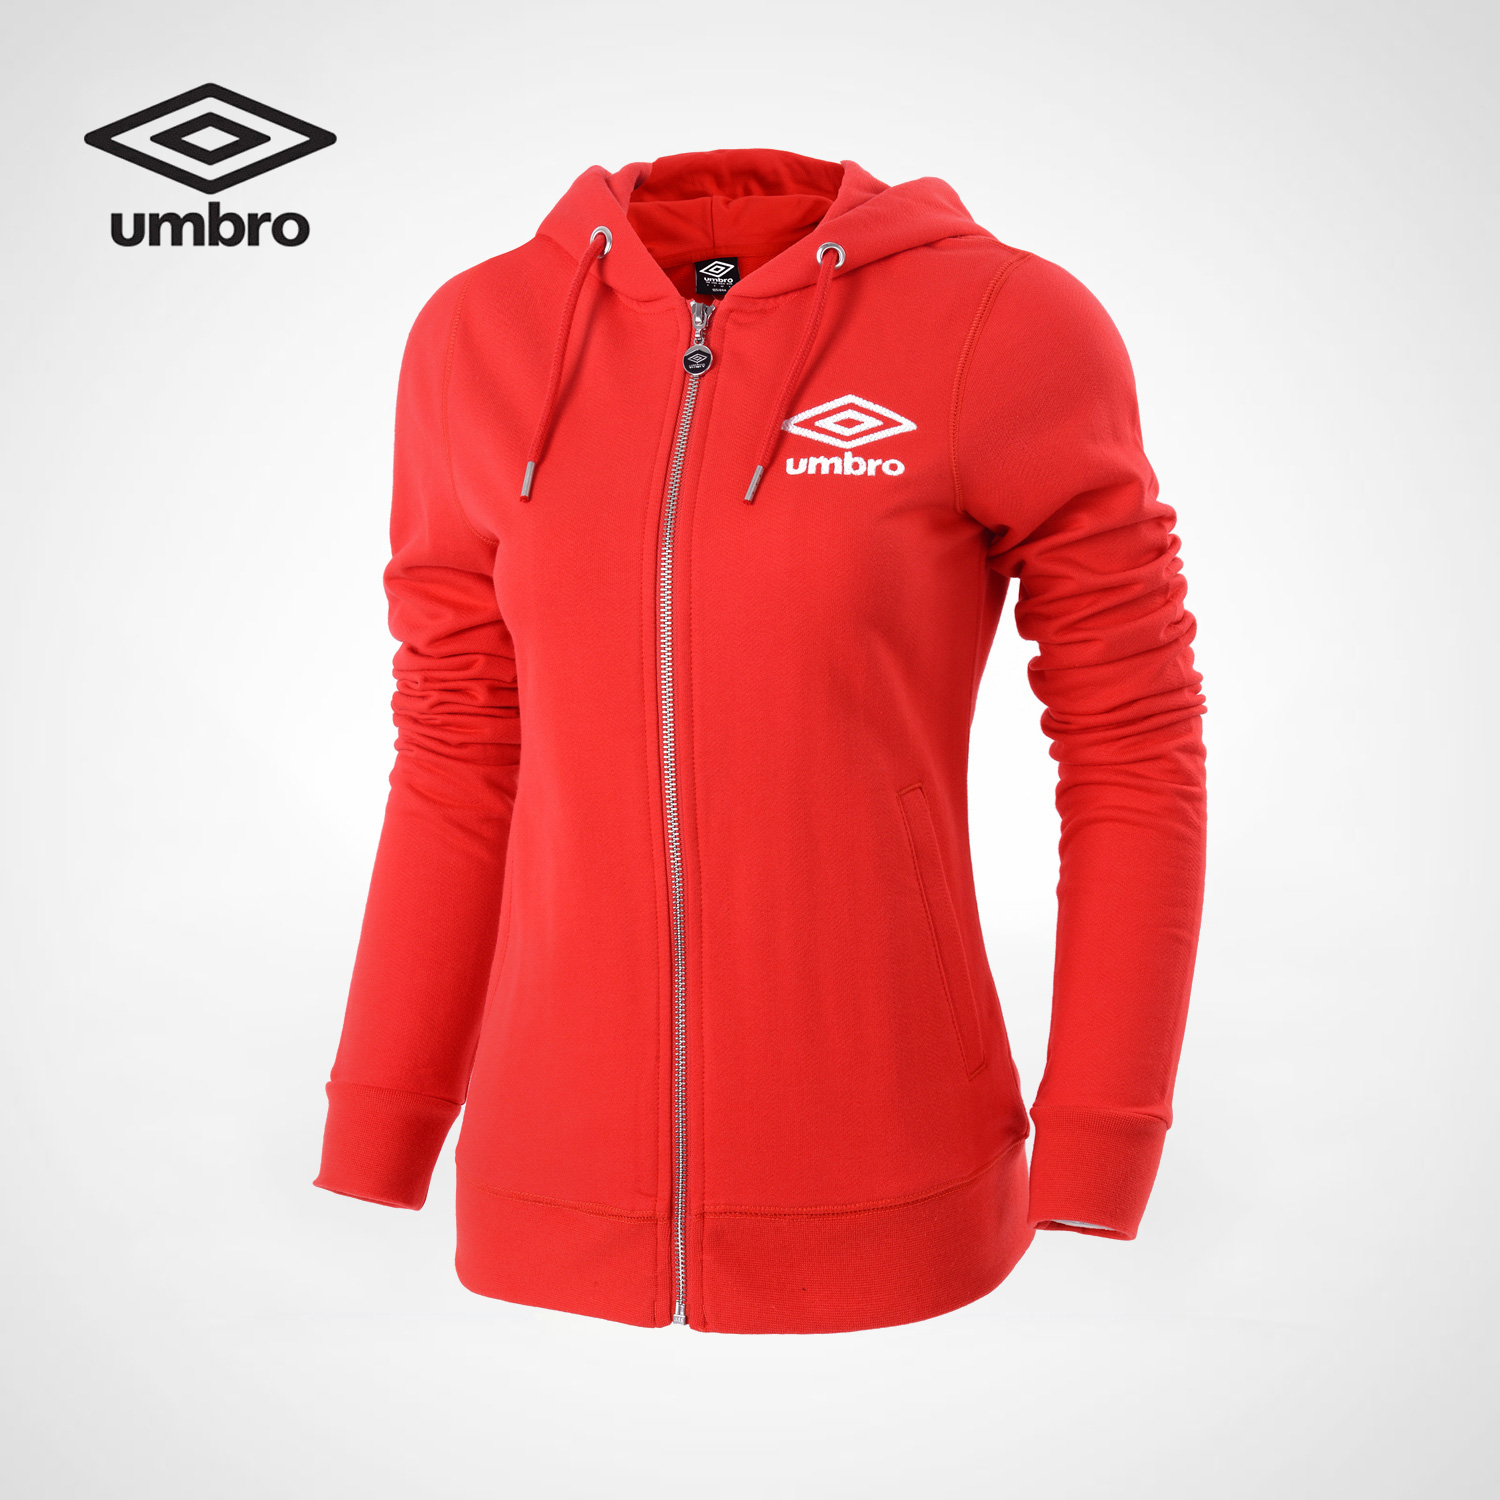 Umbro New 2018 Training Series Women Leisure Sports Coat Sweater Cardigan H Sportswear UCC63226 umbro women sweater cardigan fitness hoodie womens sport sweater black red tracksuit ucb63290